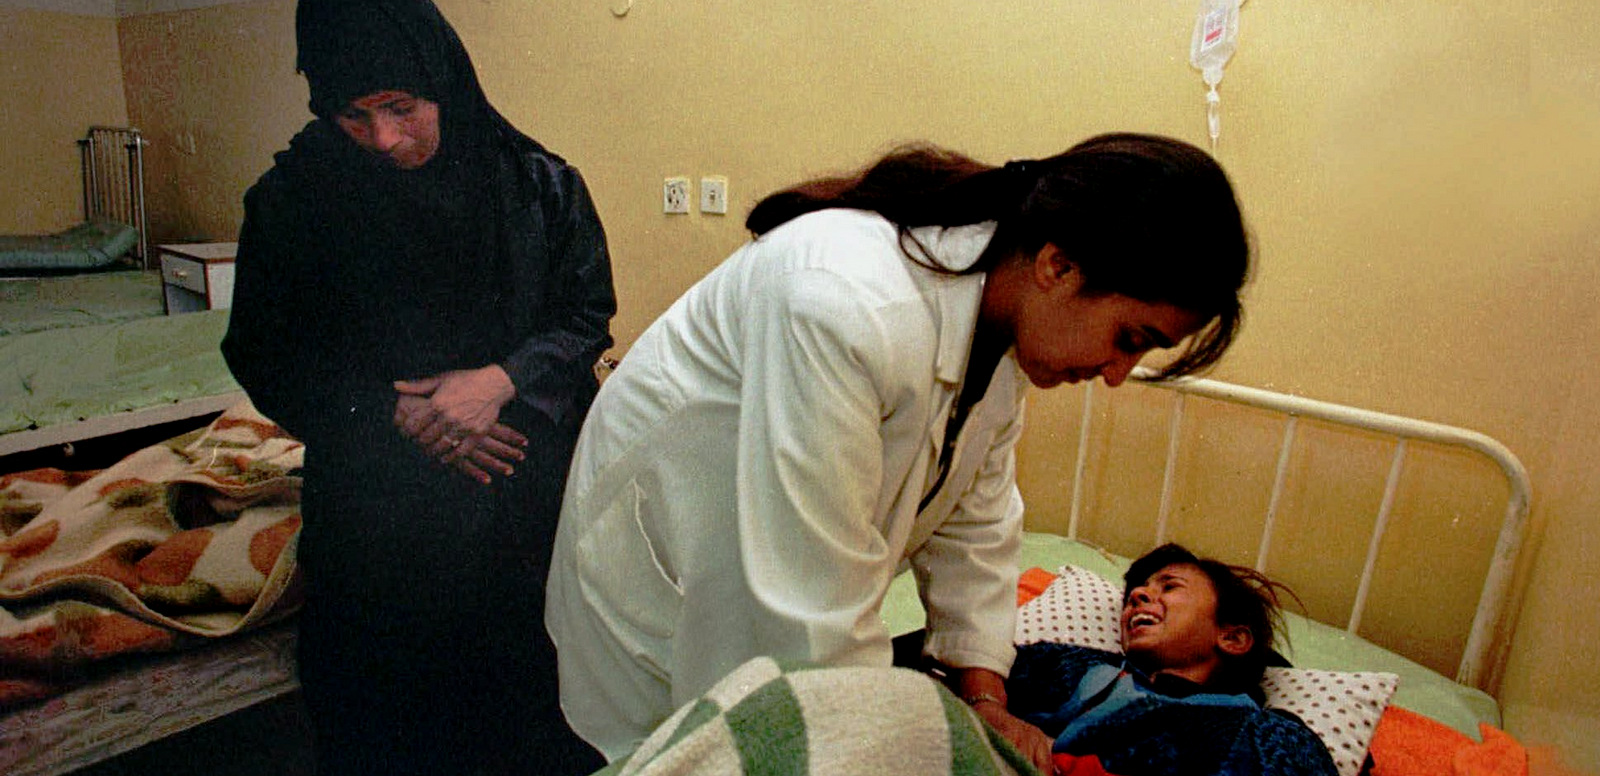 Dr. Buthayna Shibel examines a girl at the Mahawil hospital in Babylon, Iraq, Dec. 23, 1998. Economic sanctions imposed by the United States left Iraqi hospitals critically short of medicine. (AP/Murad Sezer)